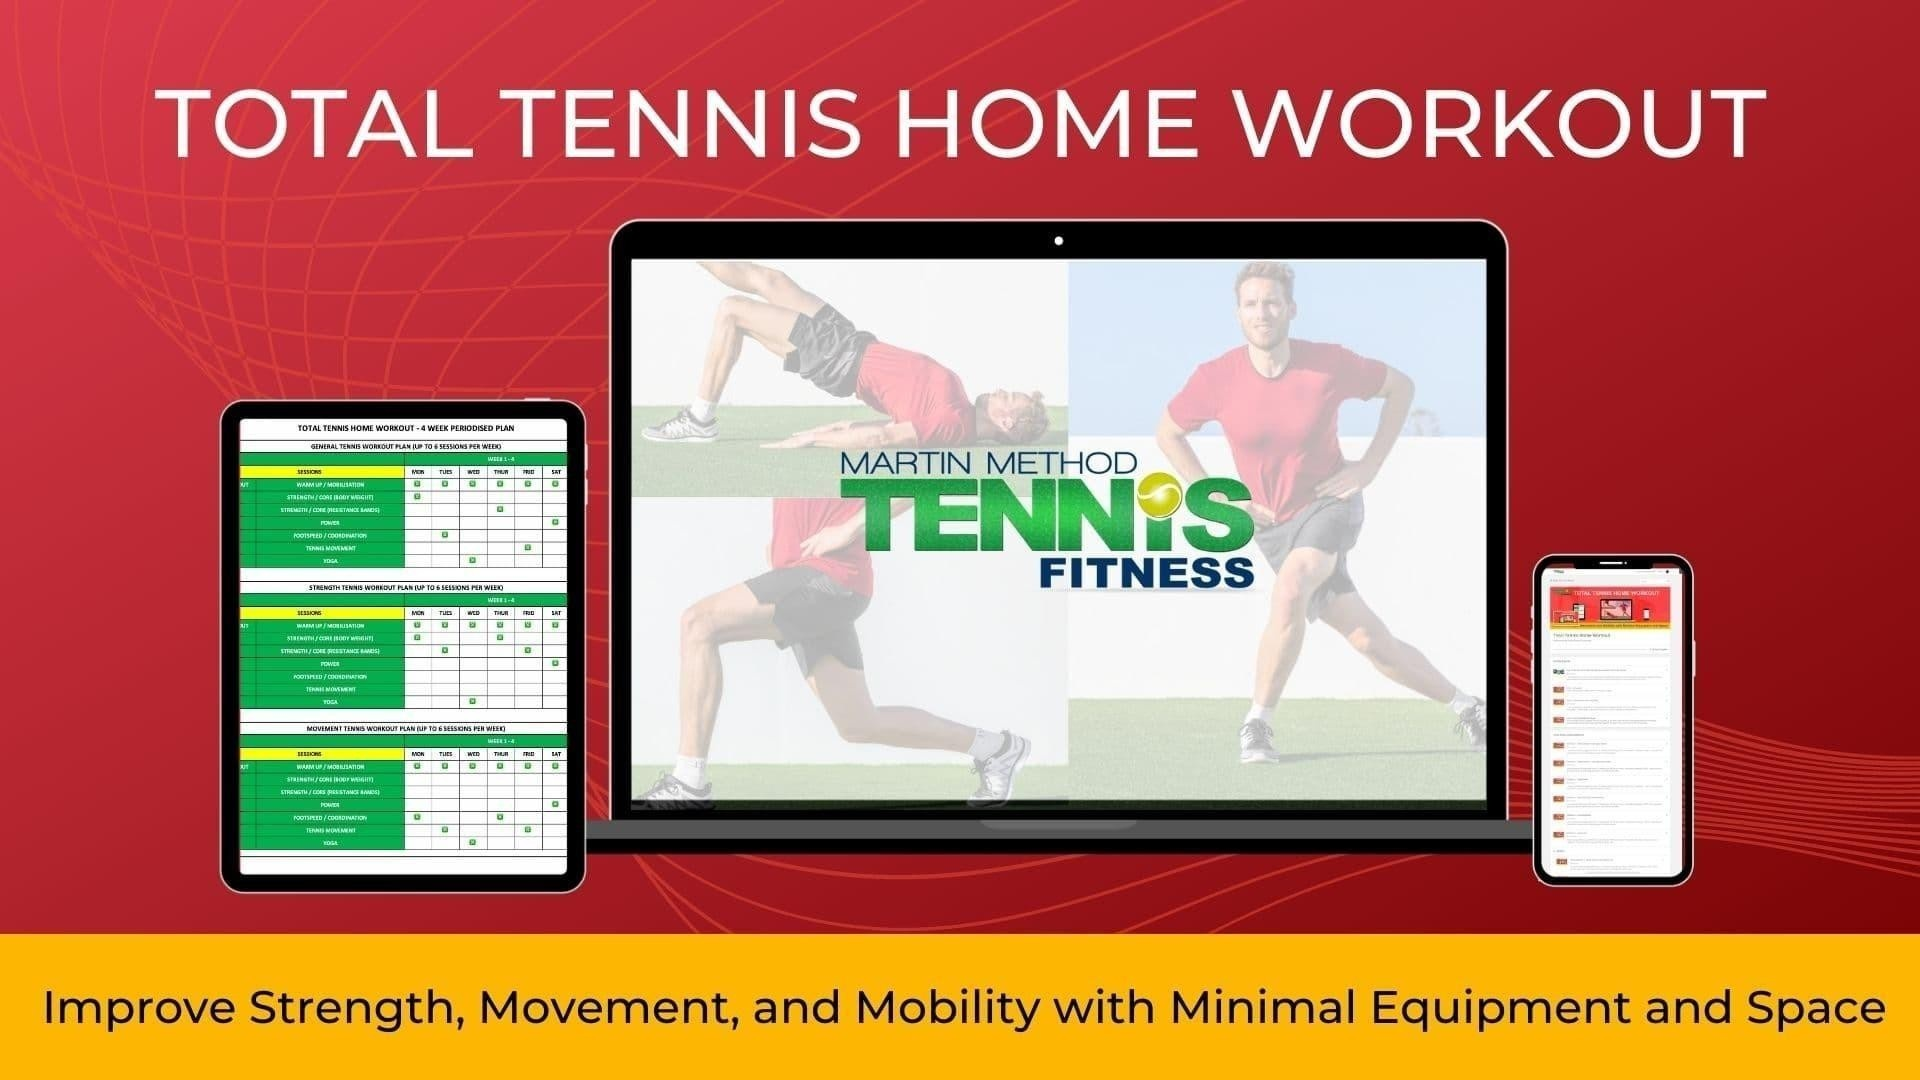 tennis-mobility-warm-up-home-workout